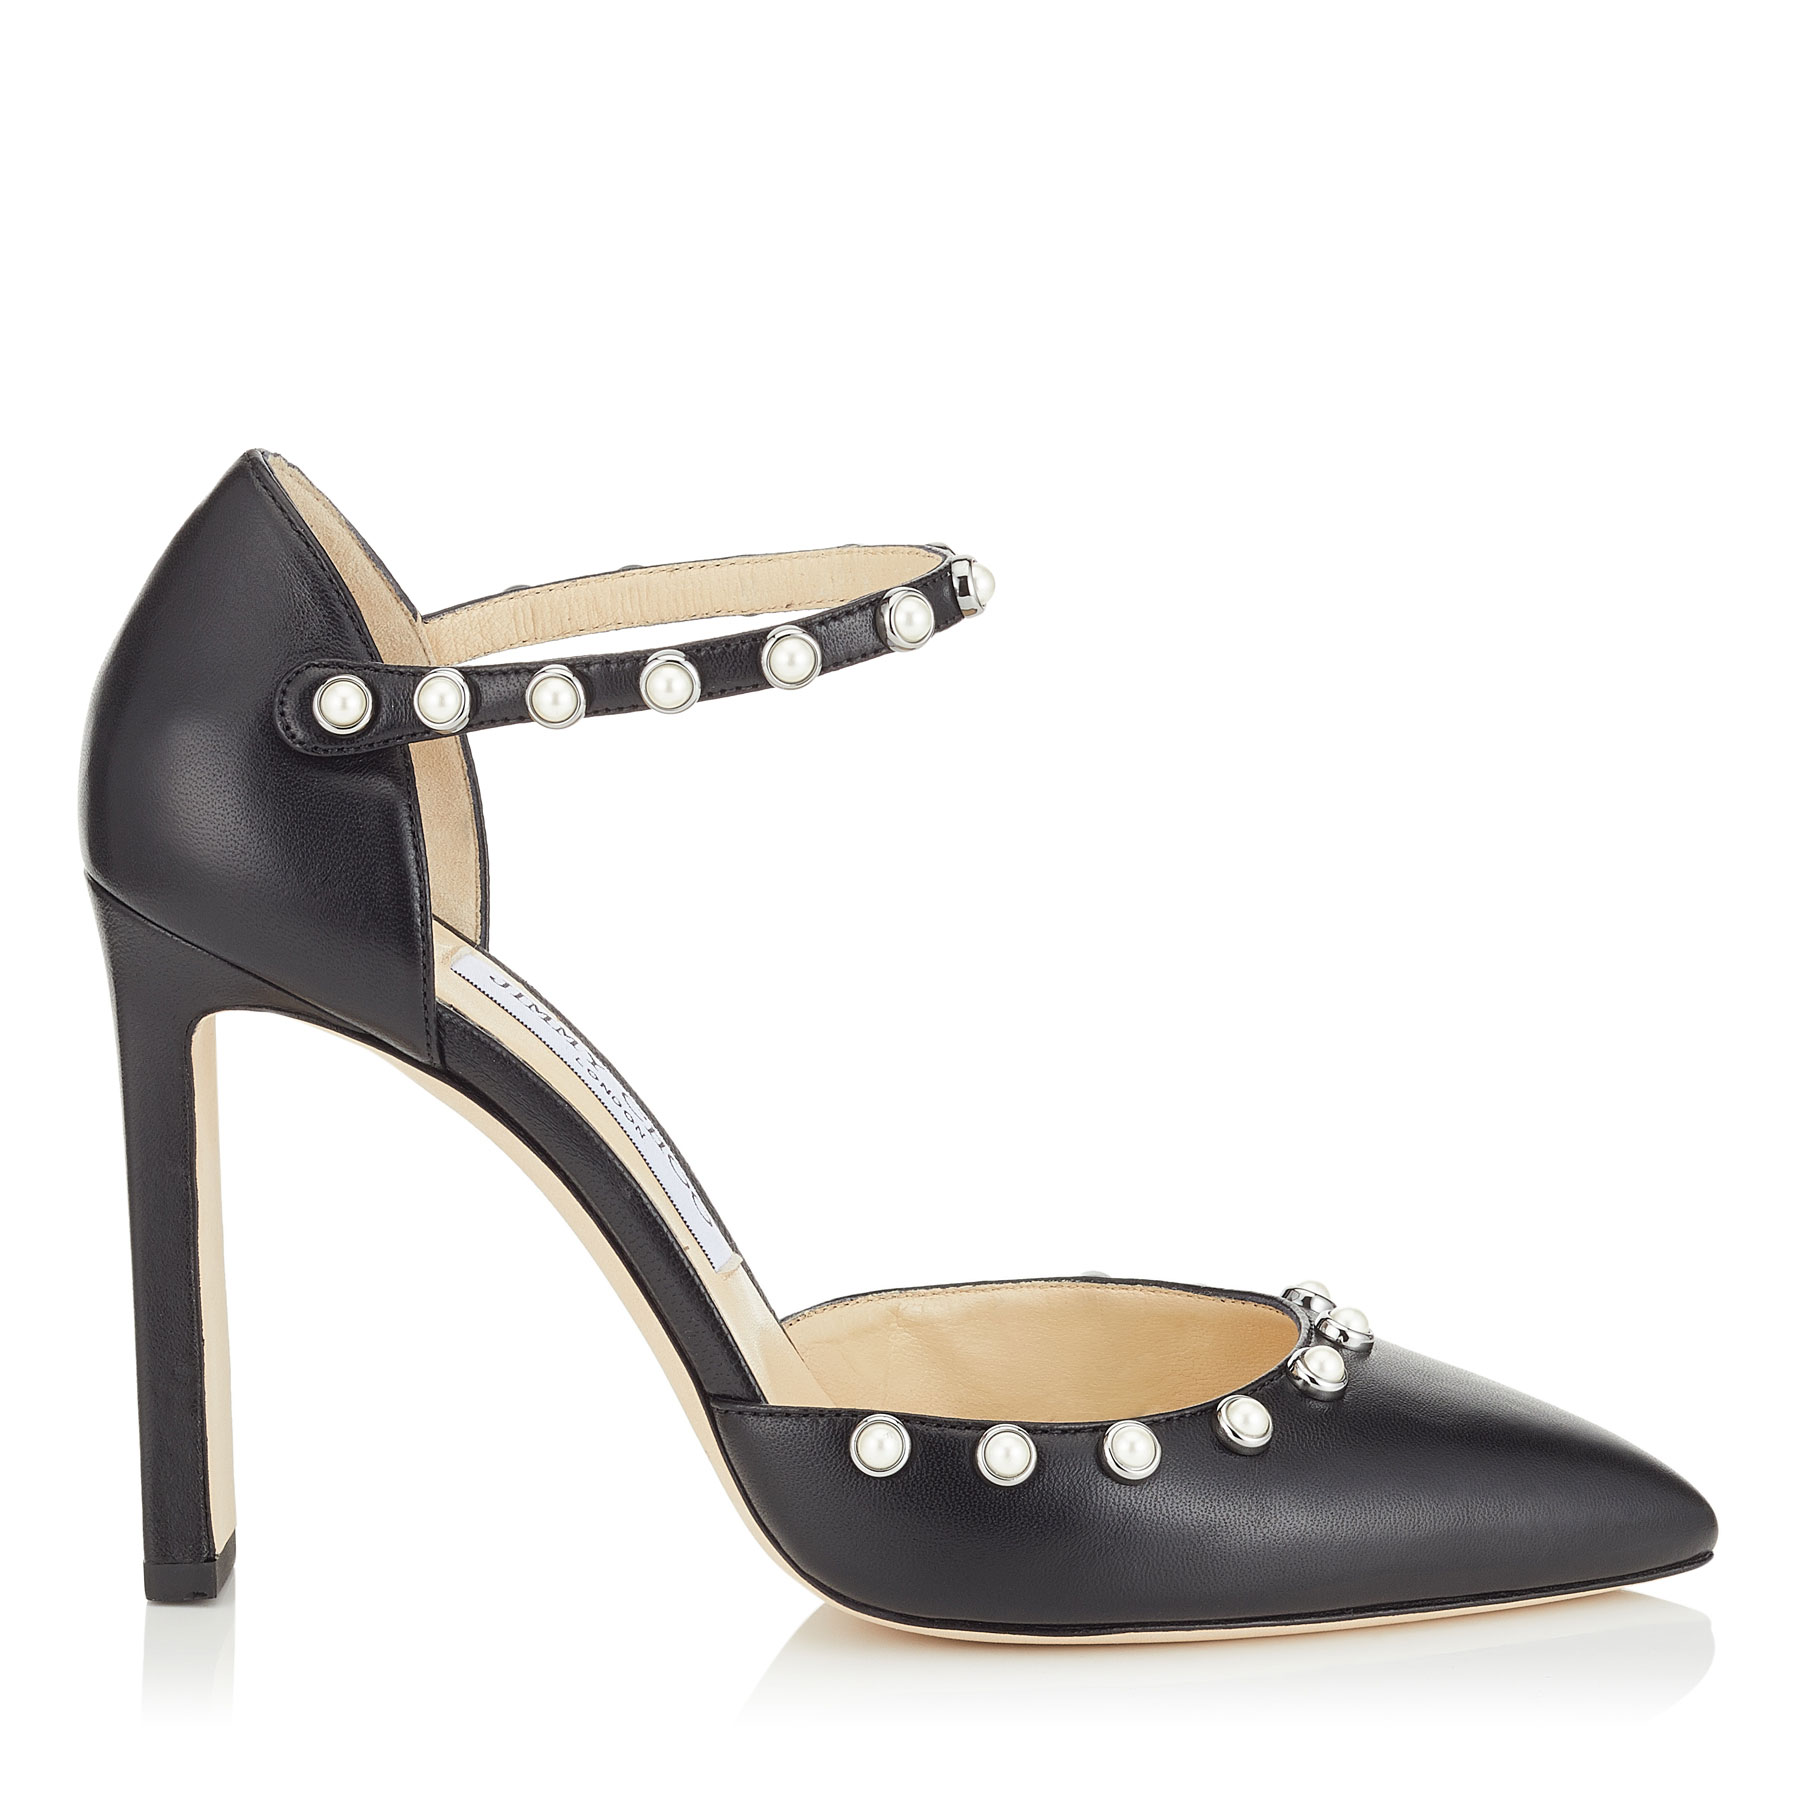 LEEMA 100 Black Nappa Leather Pumps with Beads by Jimmy Choo